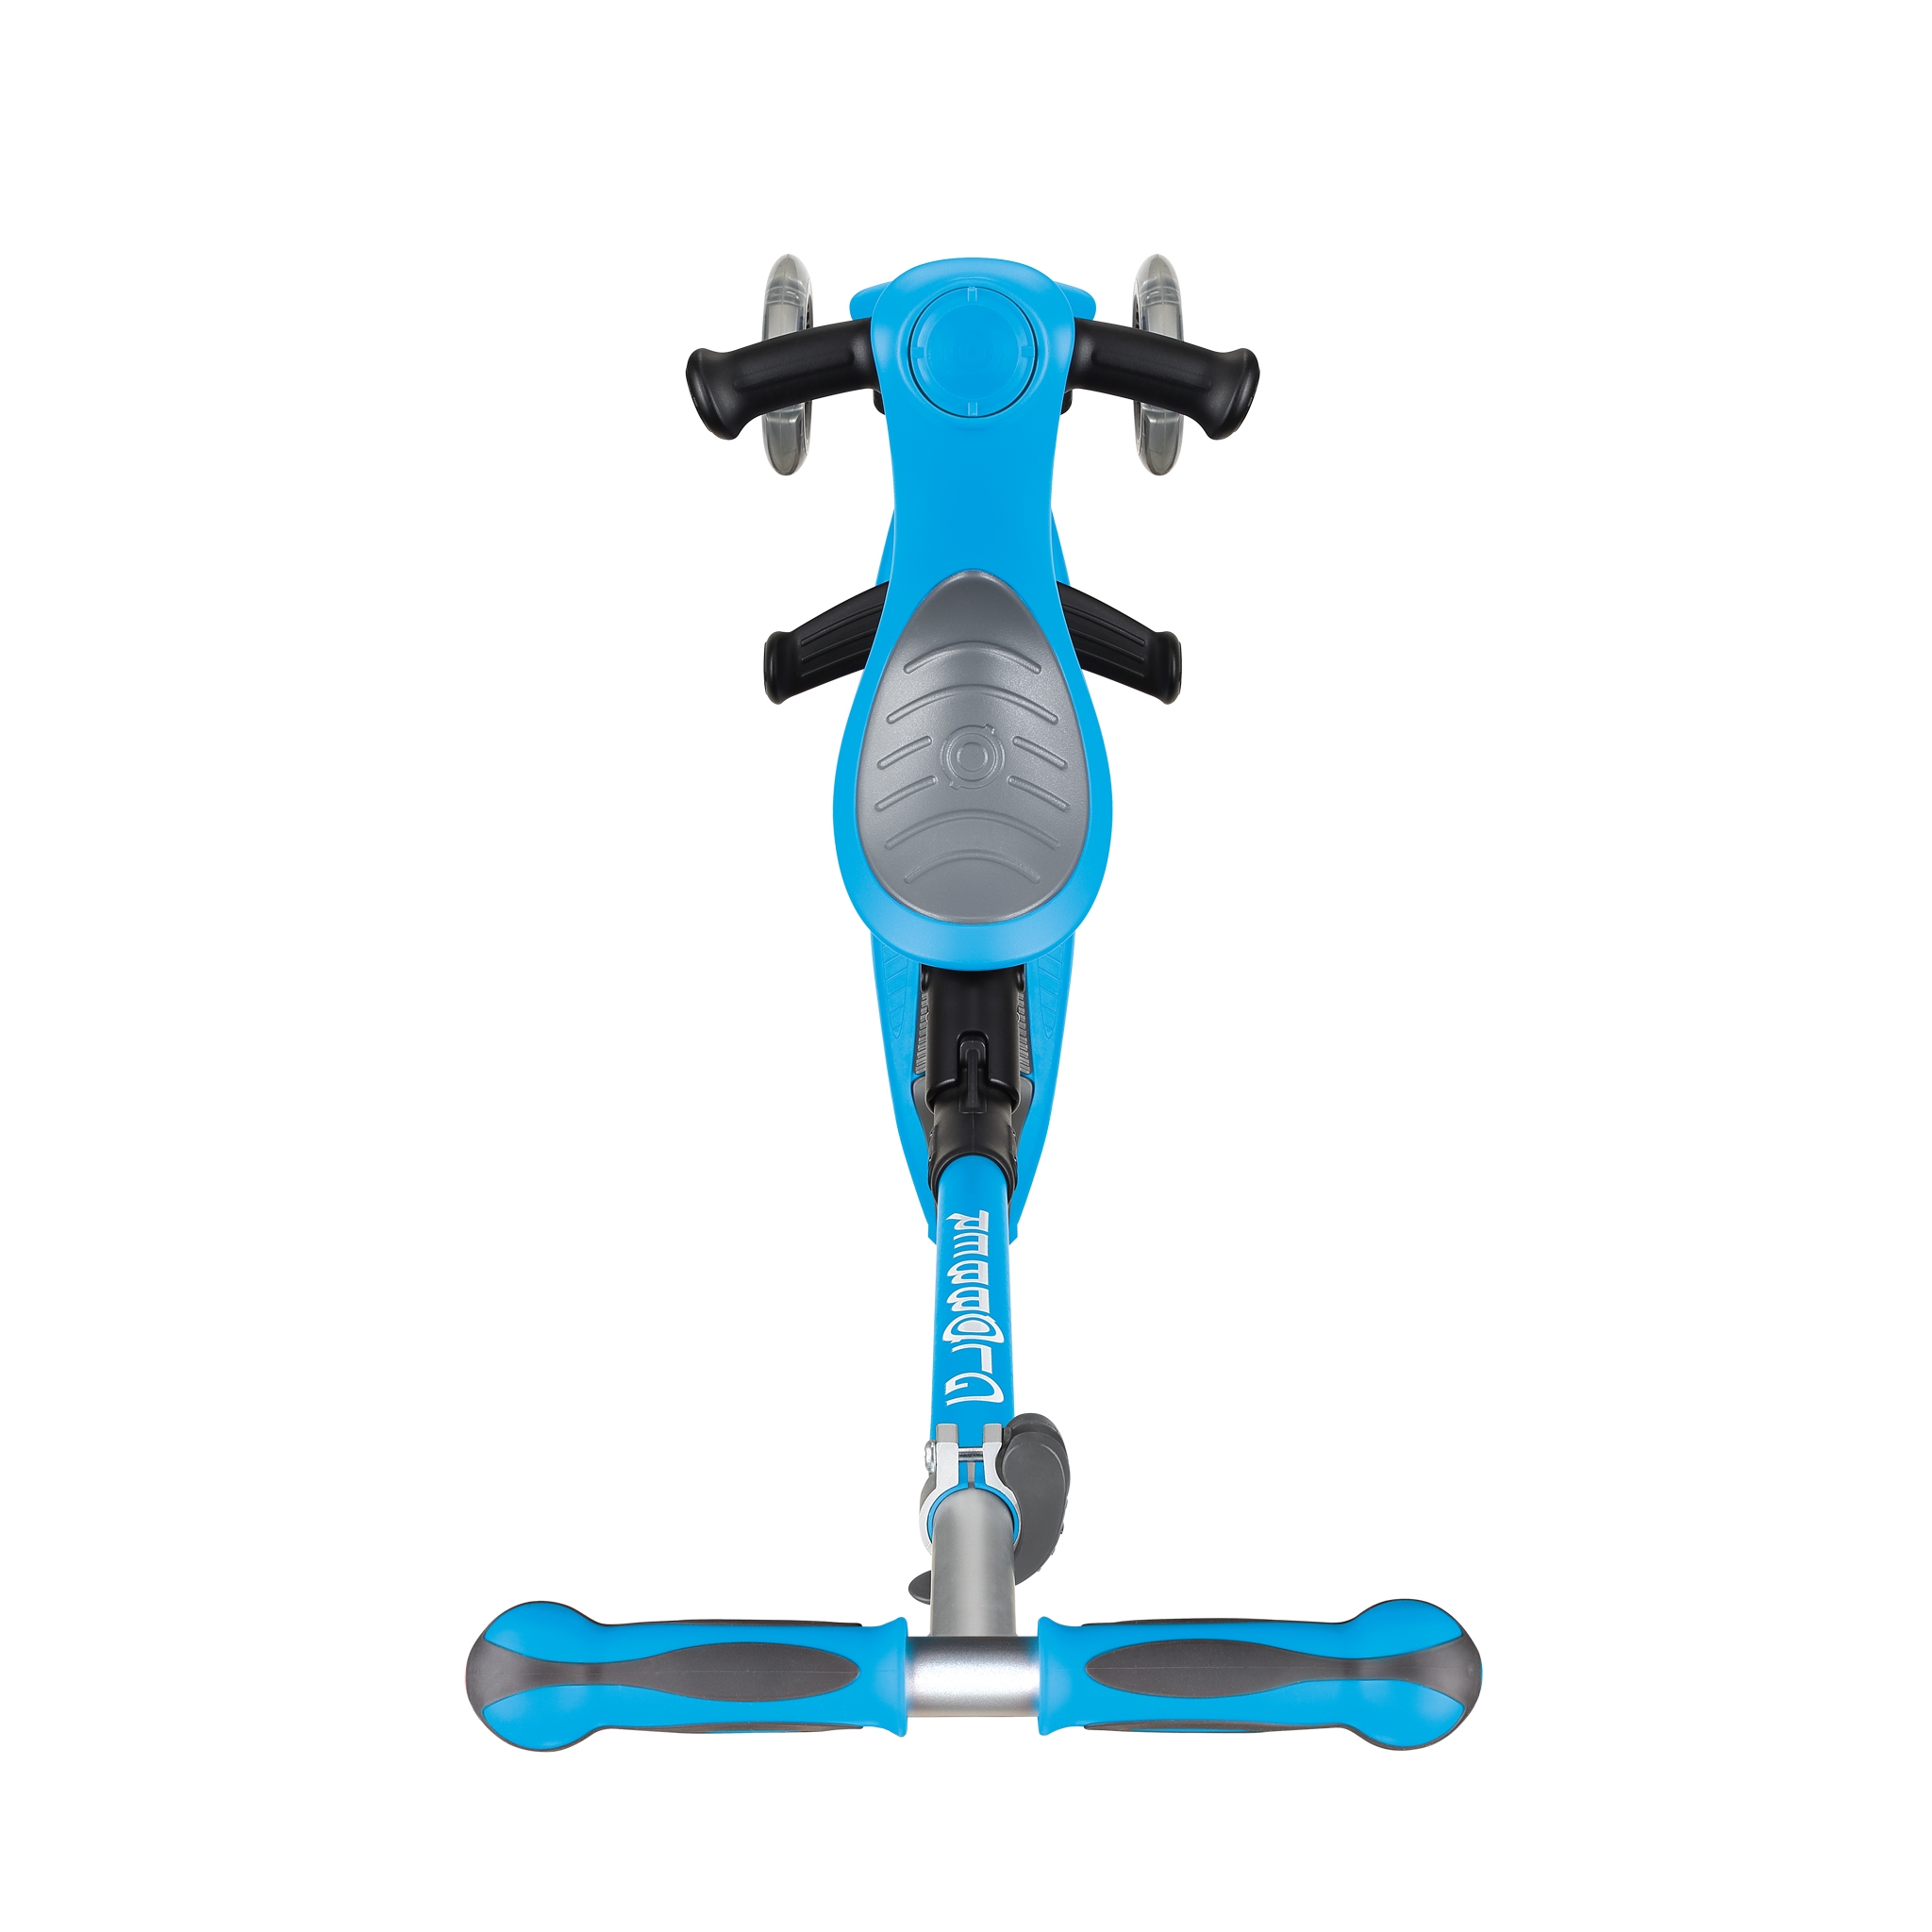 GO-UP-DELUXE-ride-on-walking-bike-scooter-with-extra-wide-3-height-adjustable-seat-sky-blue